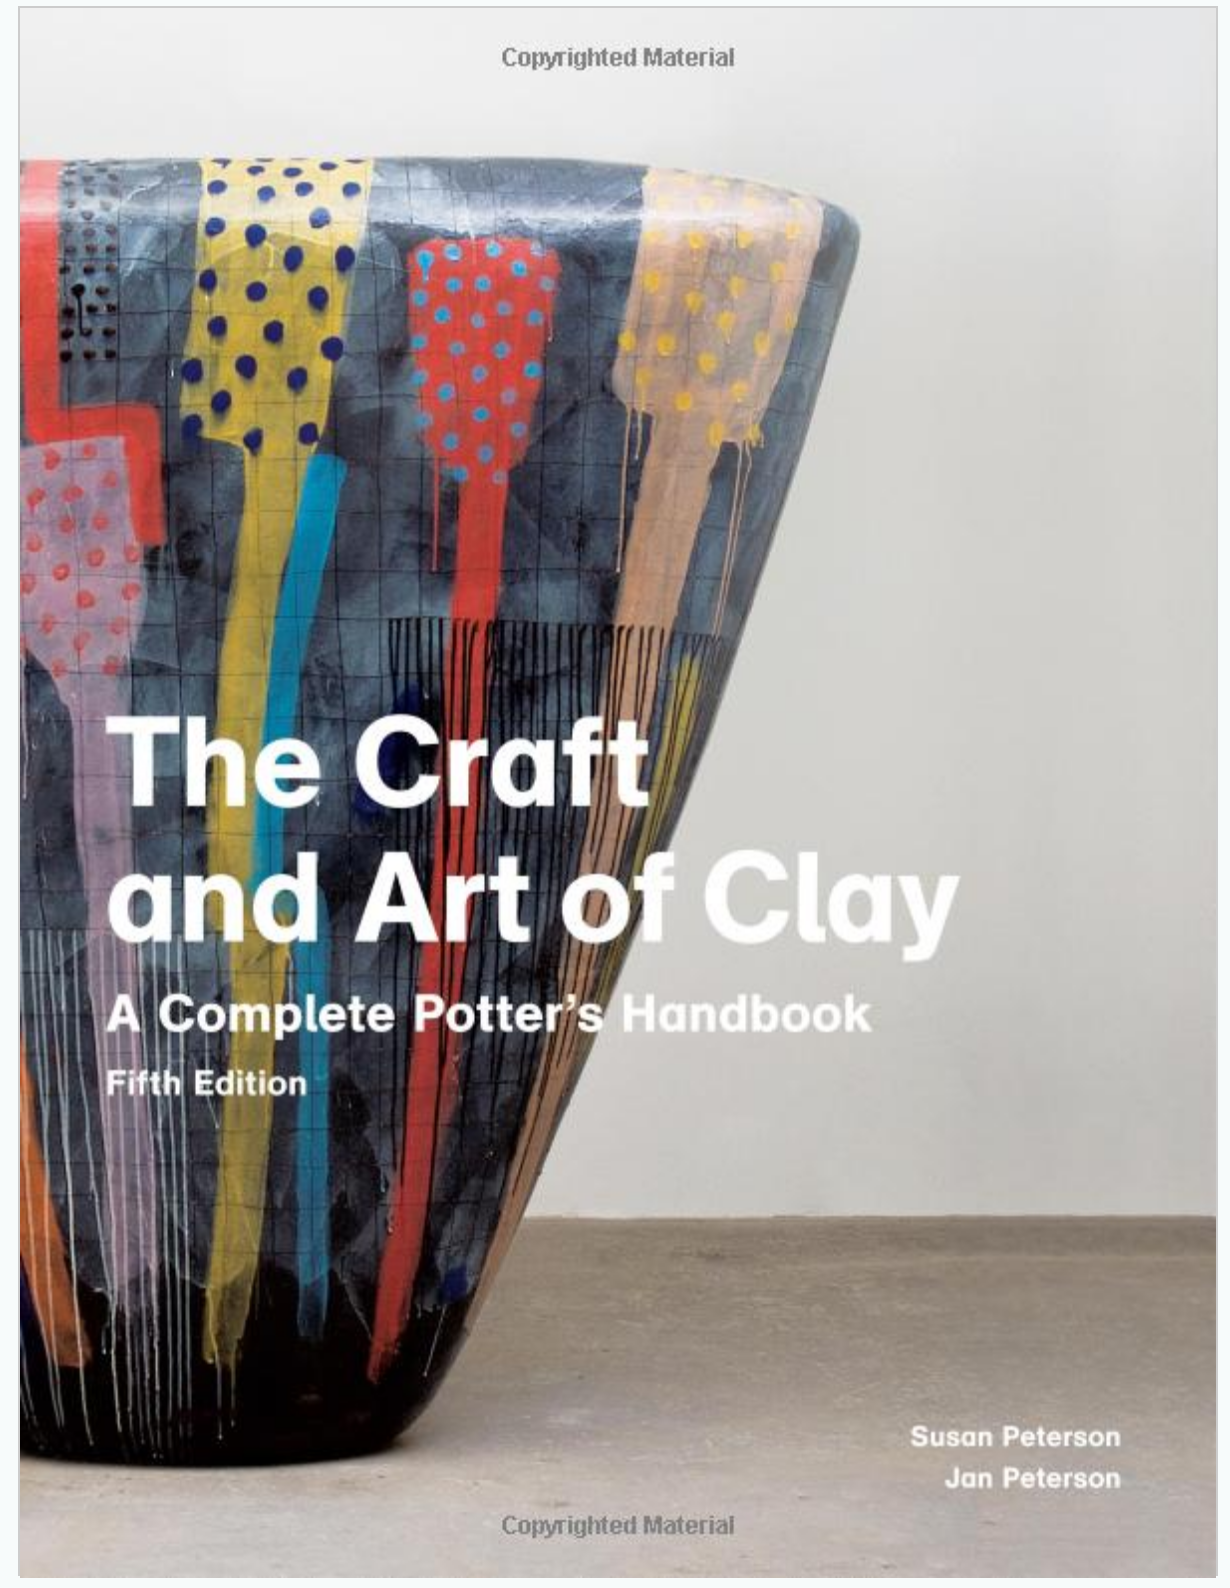 The Craft and Art of Clay by Jan Peterson and Susan Peterson